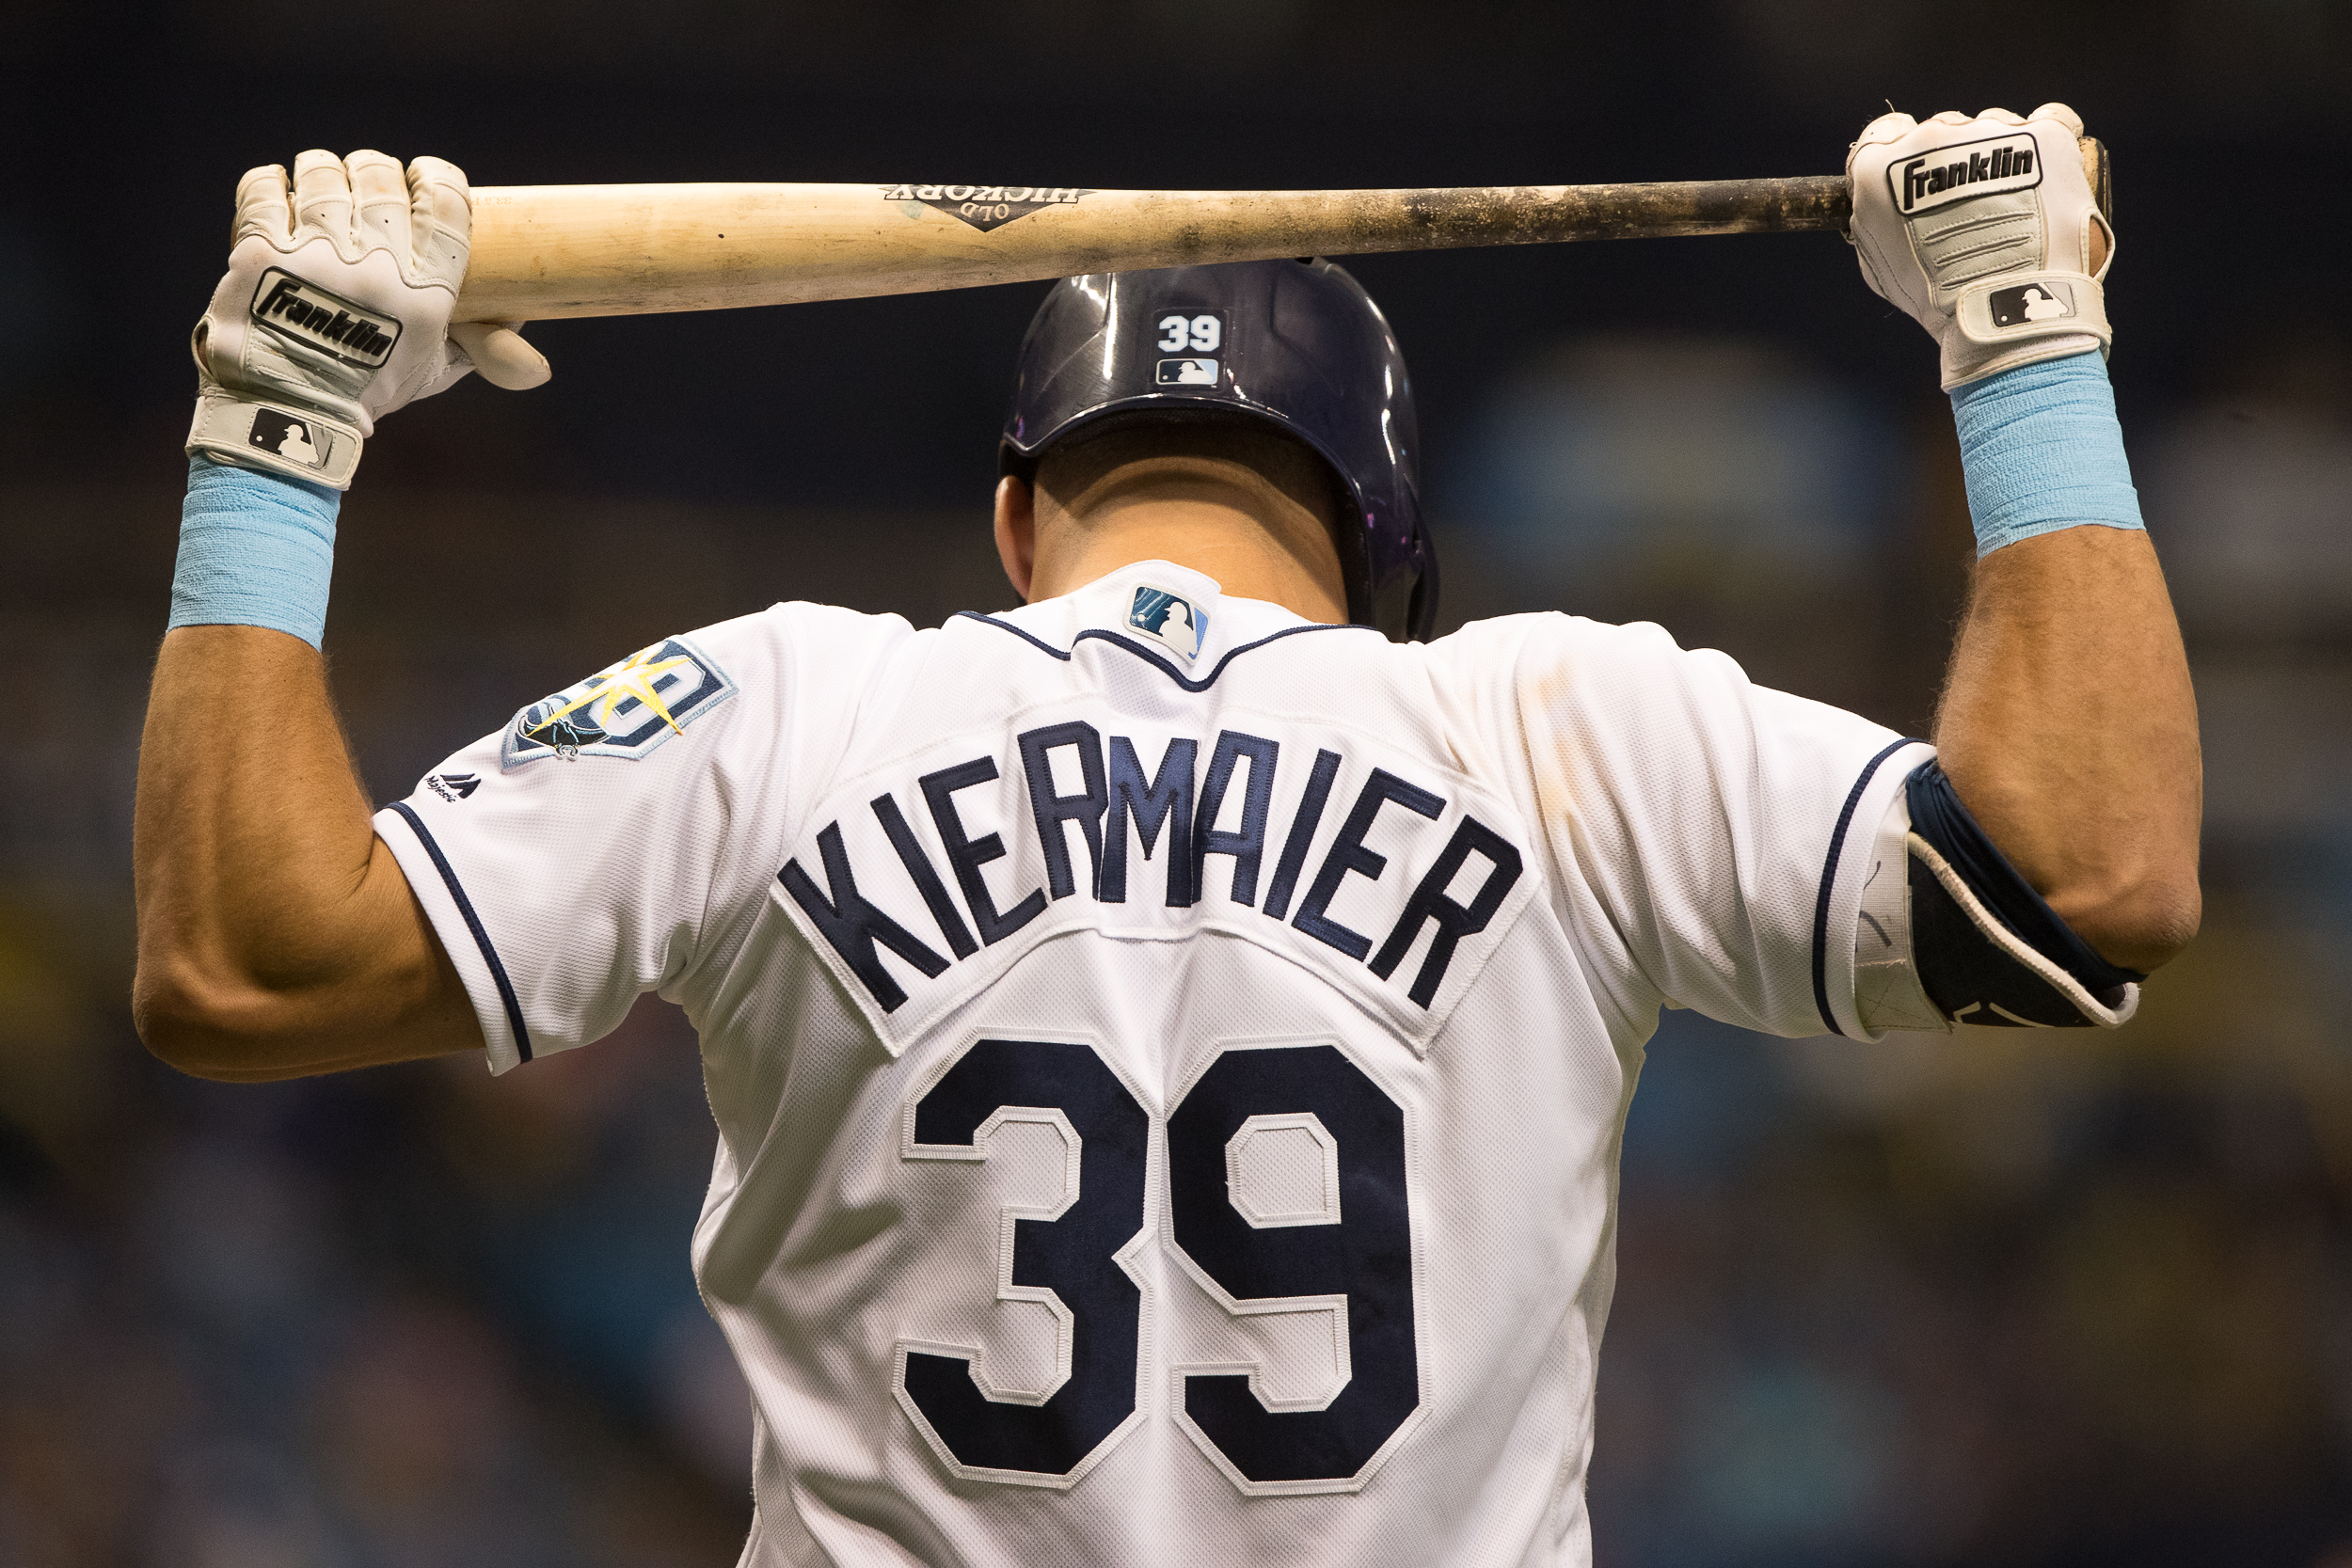 Kevin Kiermaier had two hits to up his average to .143./STEVEN MUNCIE